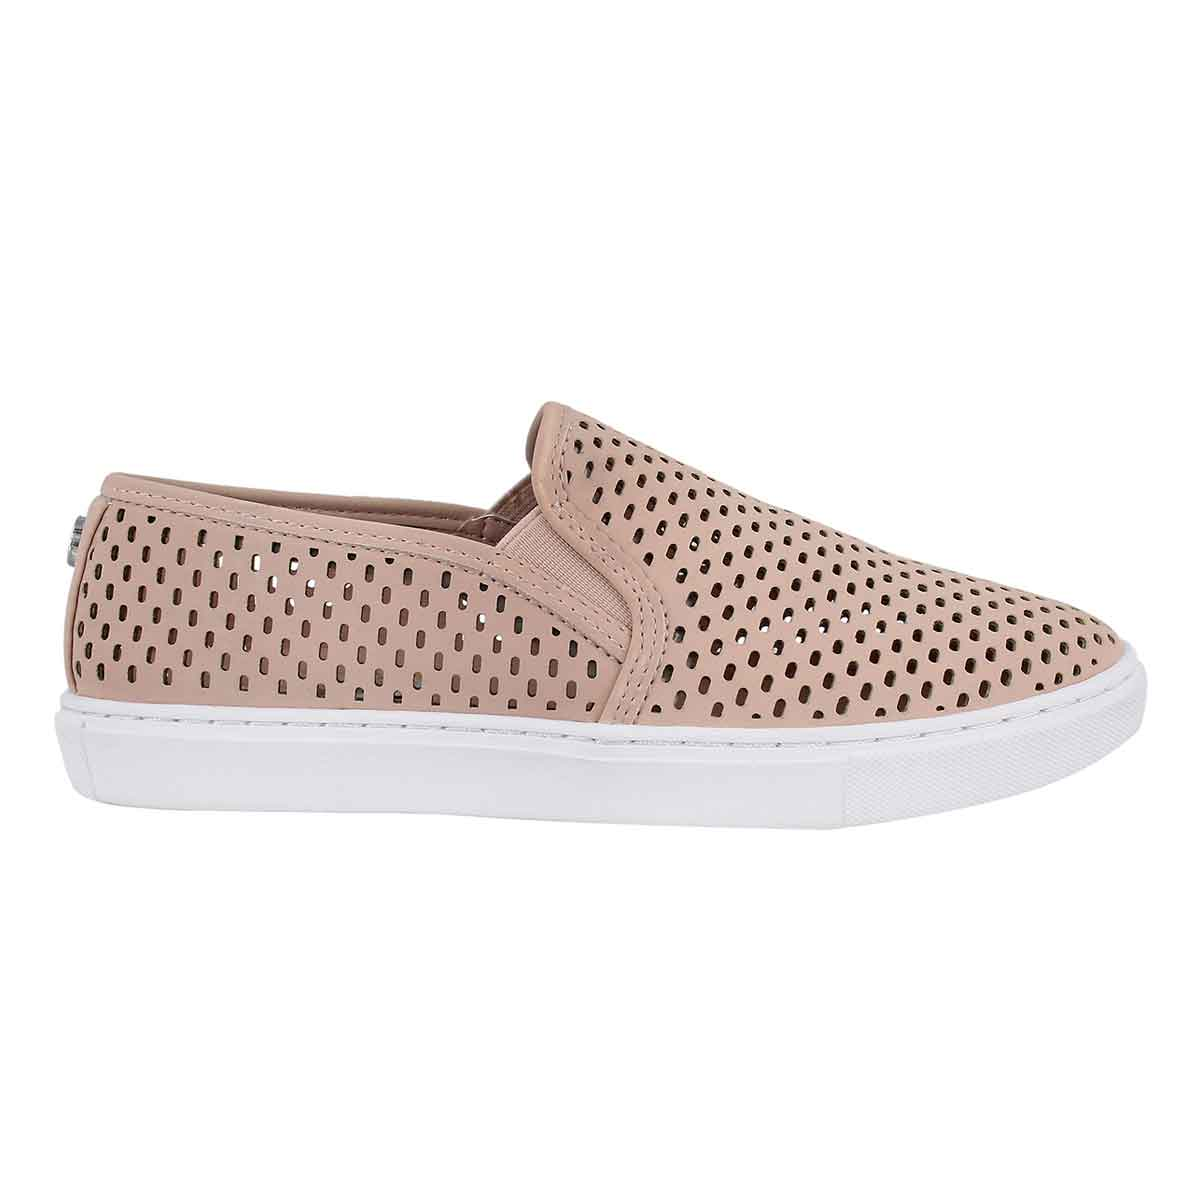 Lds Elouise pink casual slip on shoe